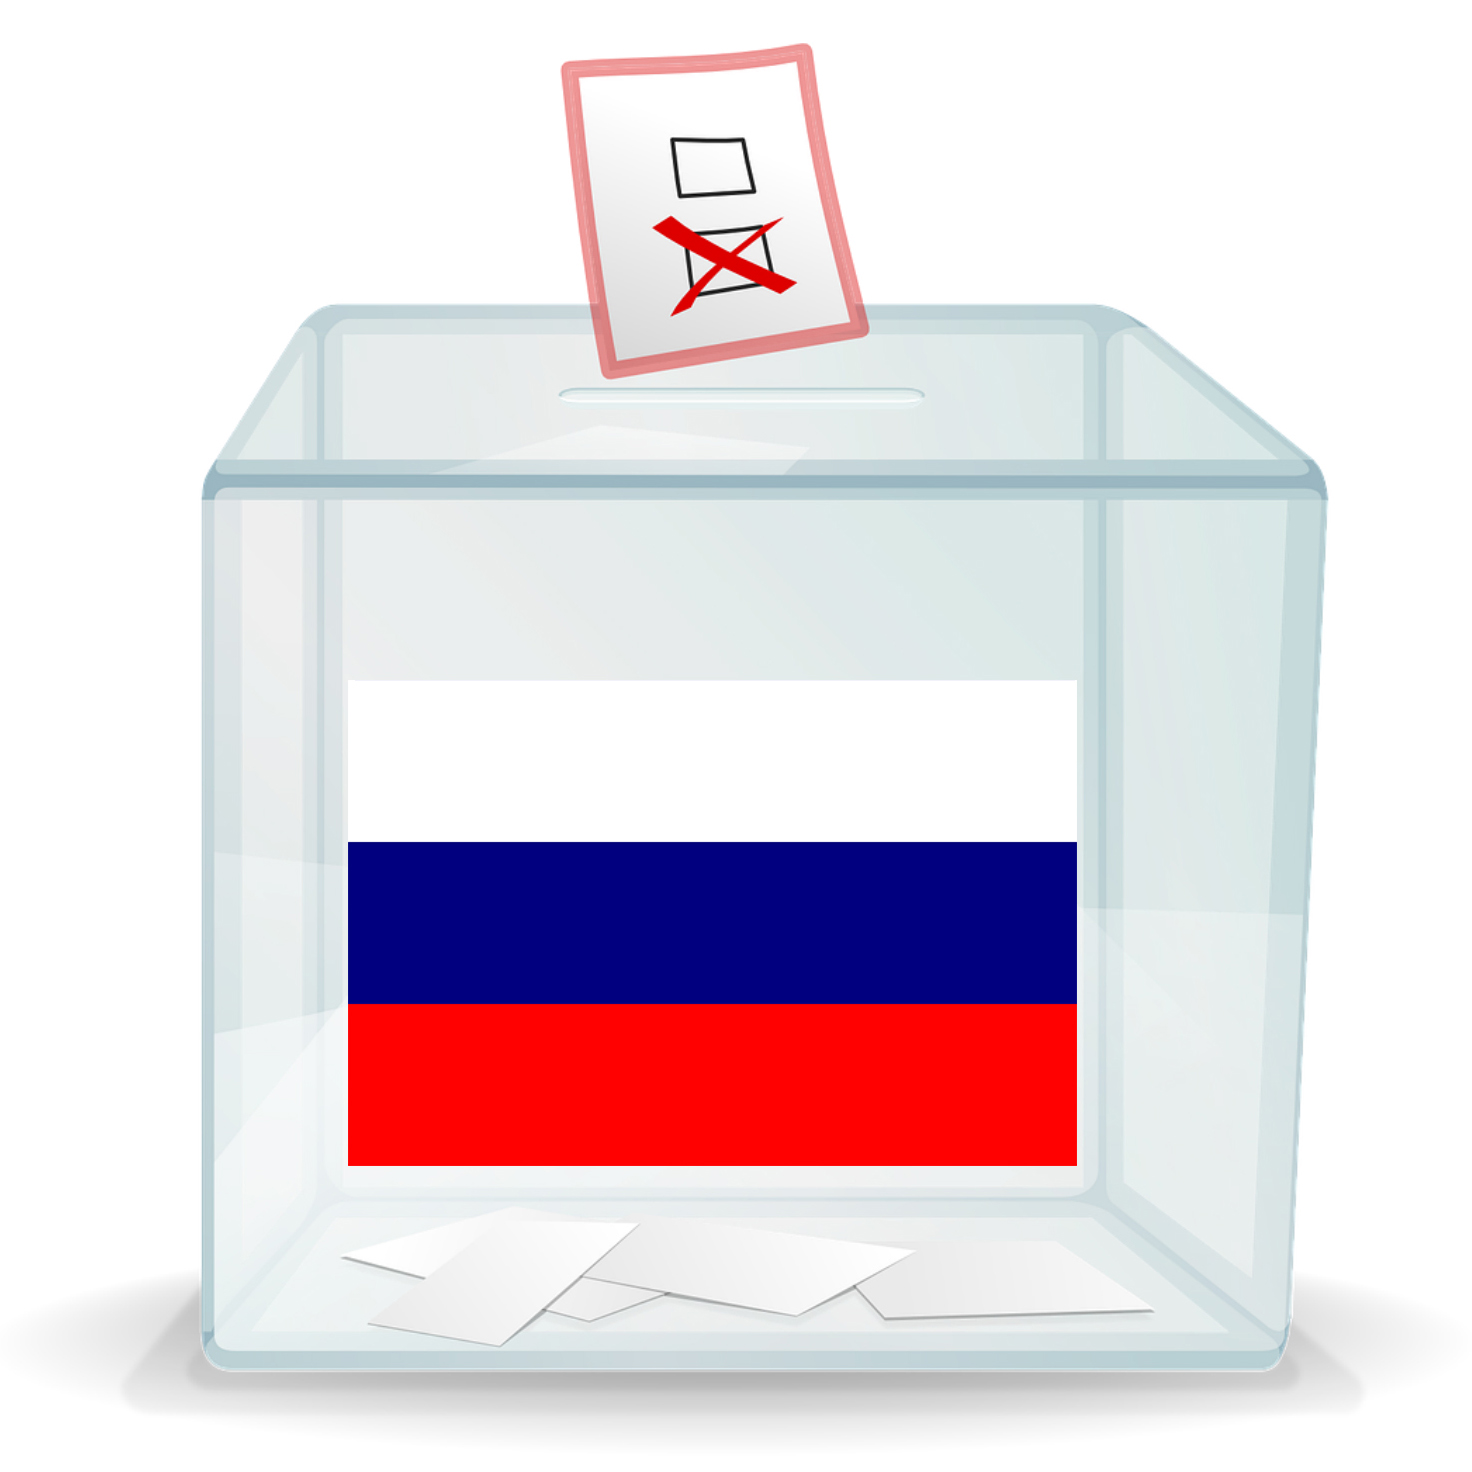 Ballot box with a Russian flag on it